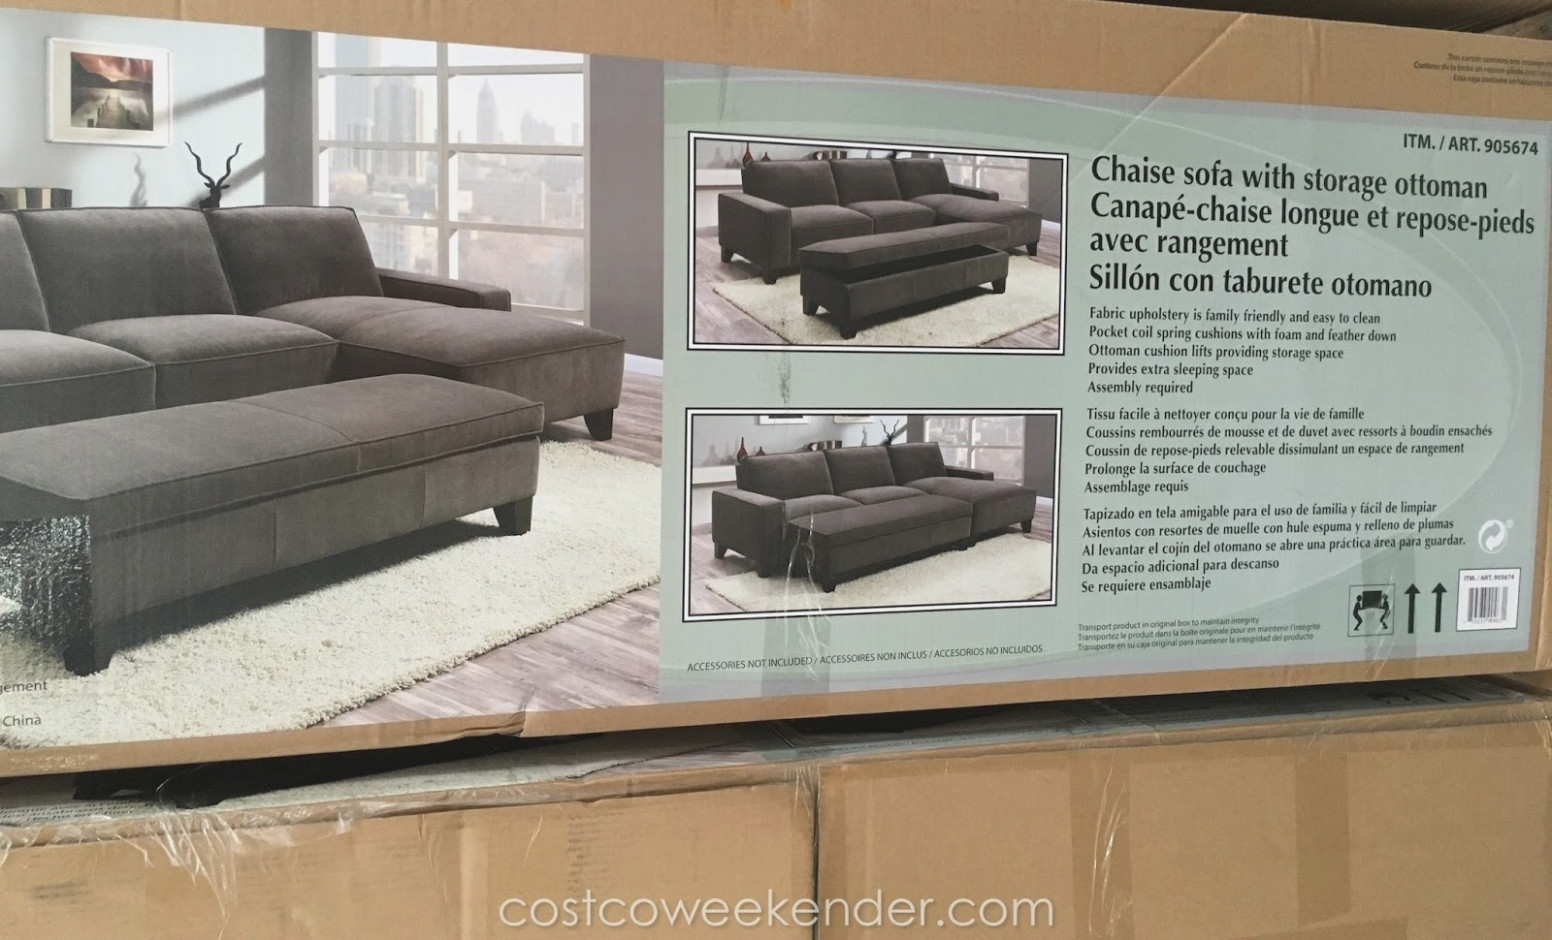 Chaise Sectional Sofa With Storage Ottoman | Costco Weekender pertaining to Taren Reversible Sofa/chaise Sleeper Sectionals With Storage Ottoman (Image 3 of 30)